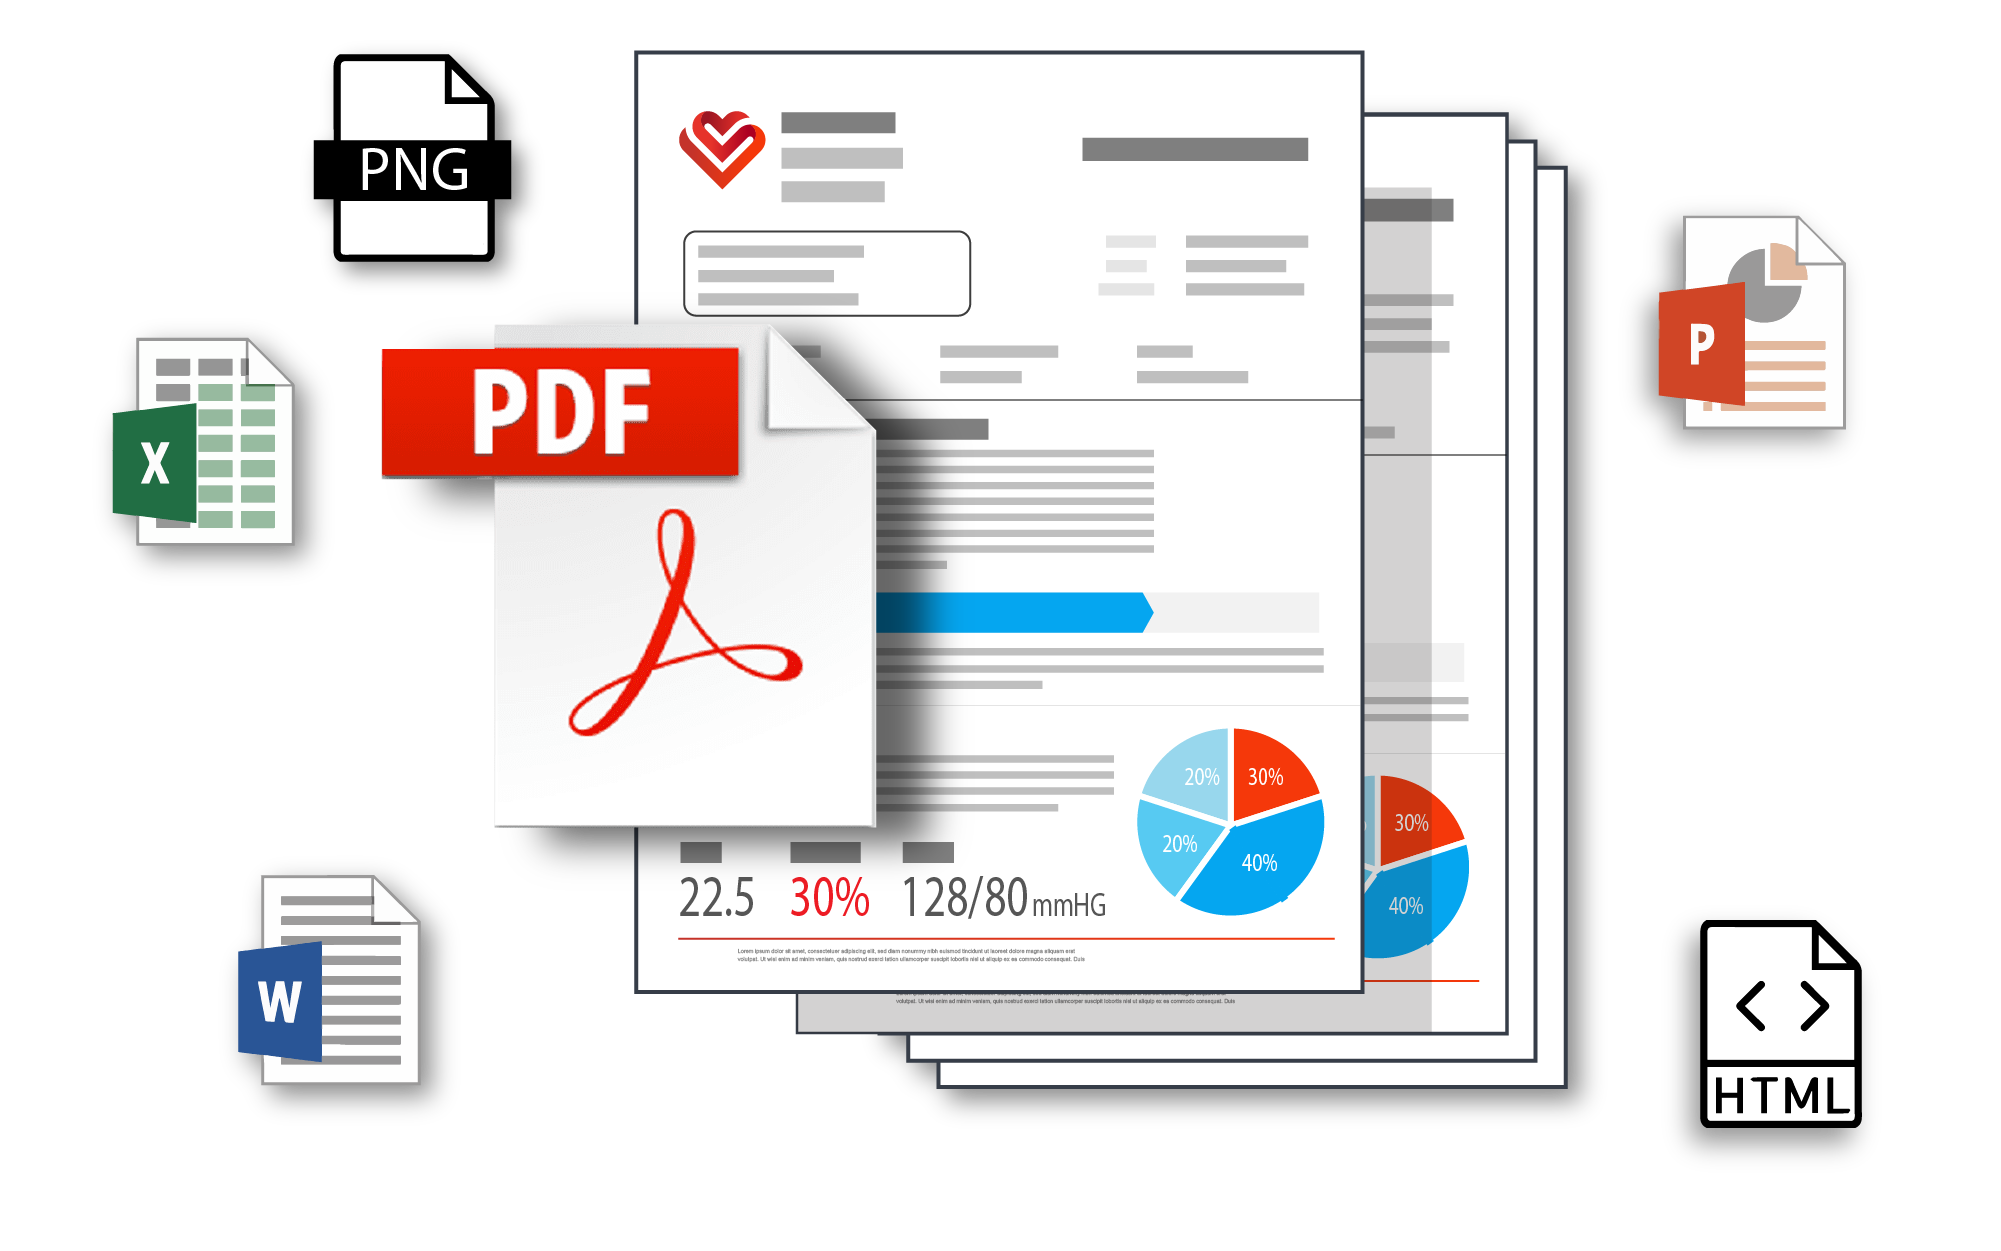 Graphic showing the different outputs we support: PDF, Excel, Word, PowerPoint, & HTML.